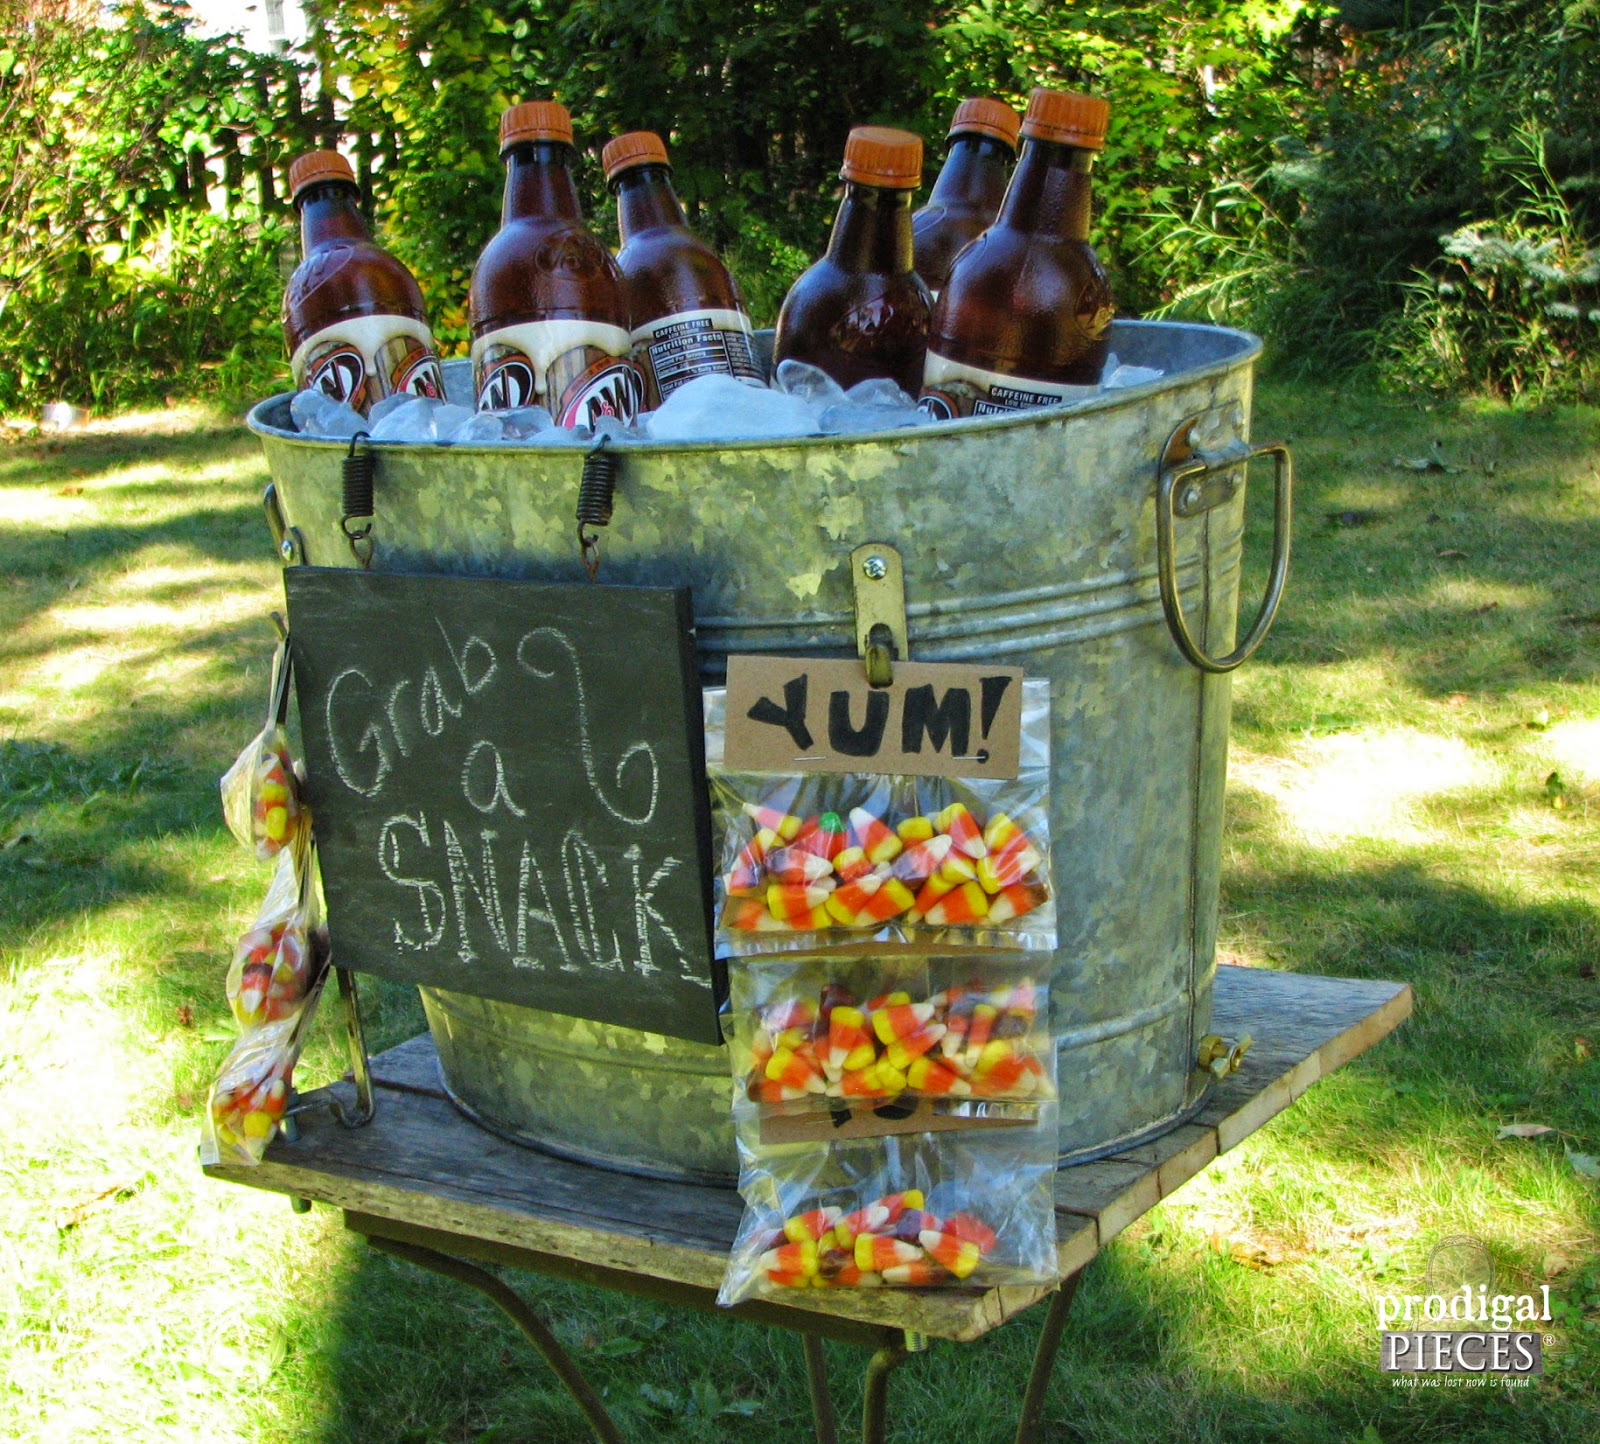 DIY Repurposed Snack & Beverage Stand Tutorial by Prodigal Pieces http://www.prodigalpieces.com